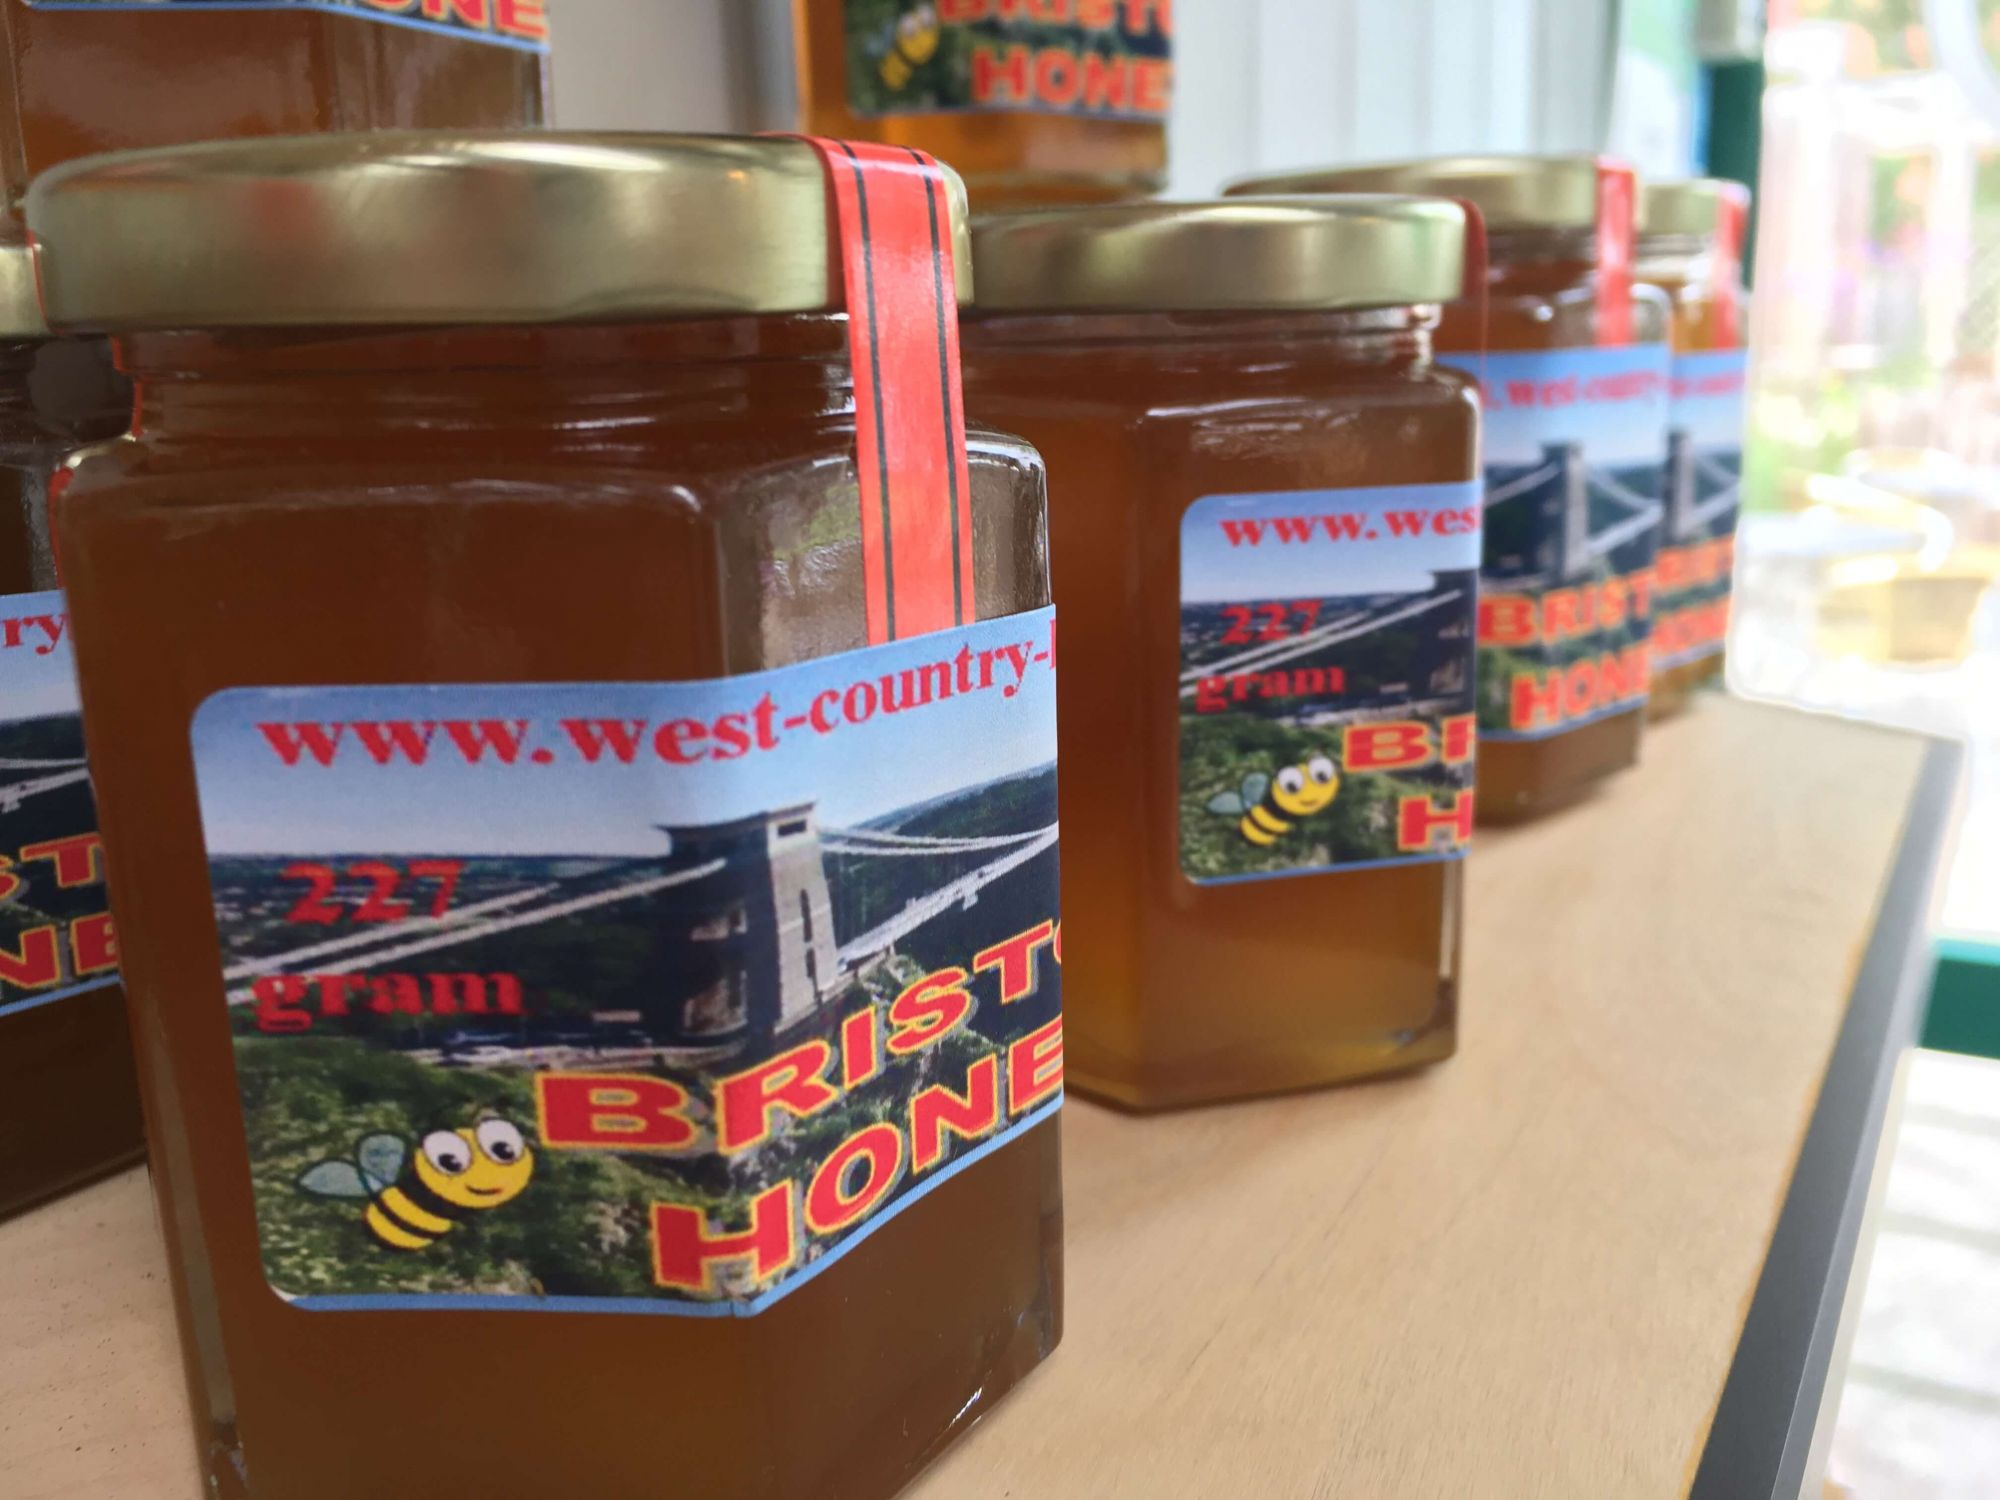 West Country Honey at Riverside Garden Centre Cafe